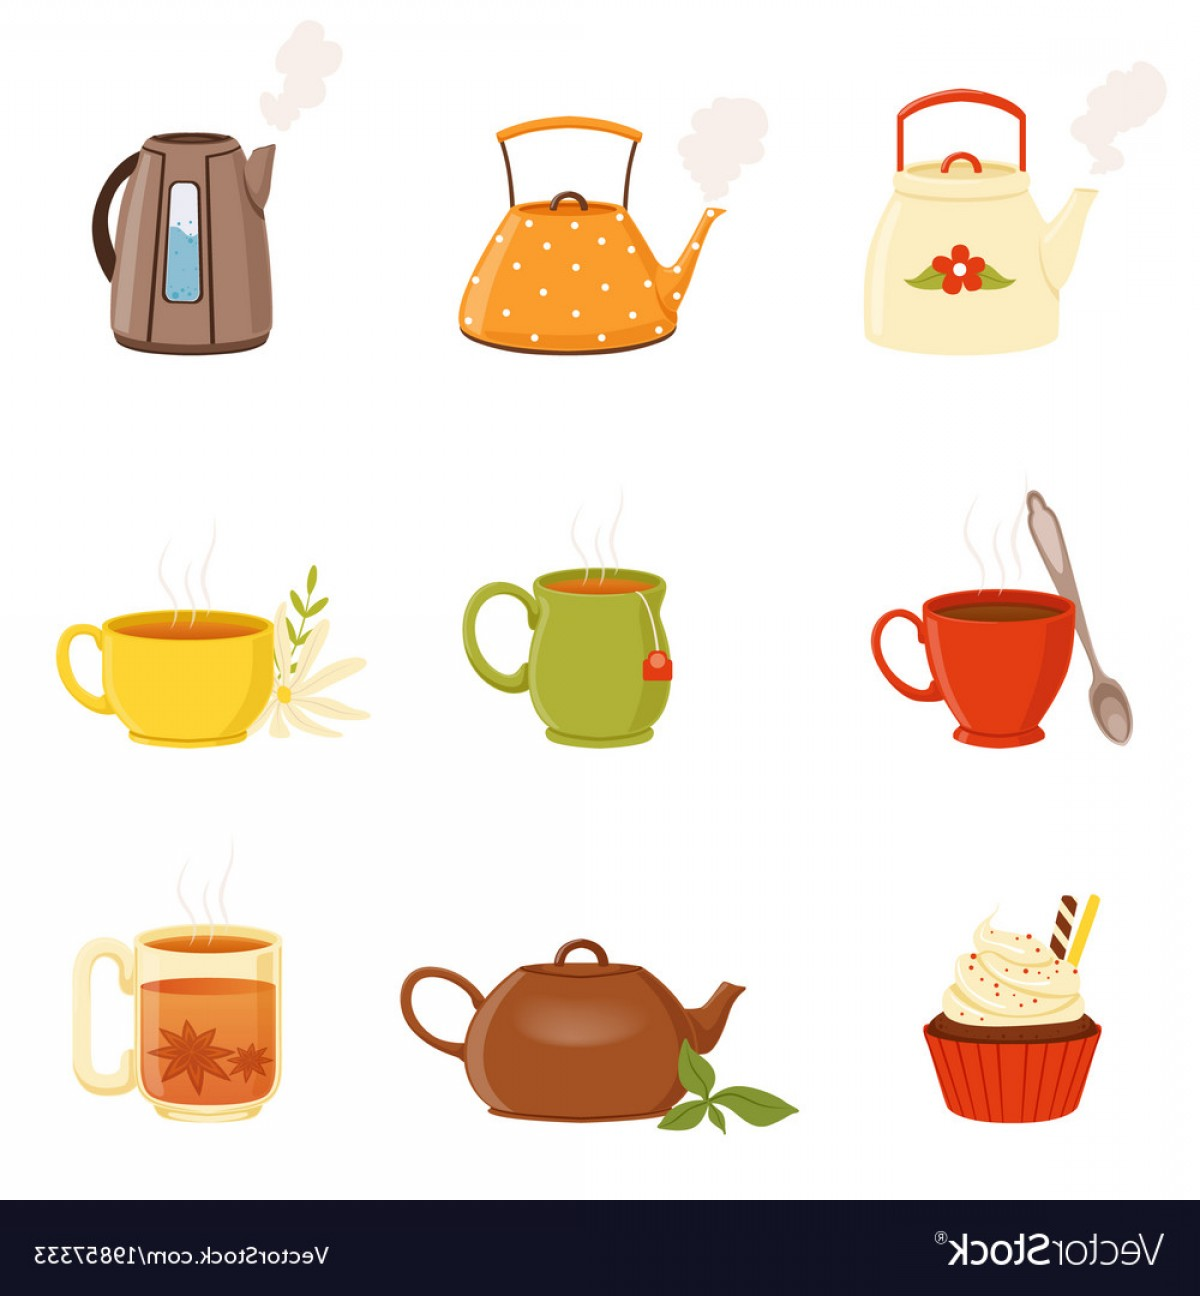 Tea Set Vector: Tea Set Various Kitchen Utensils Tea Cup And Vector